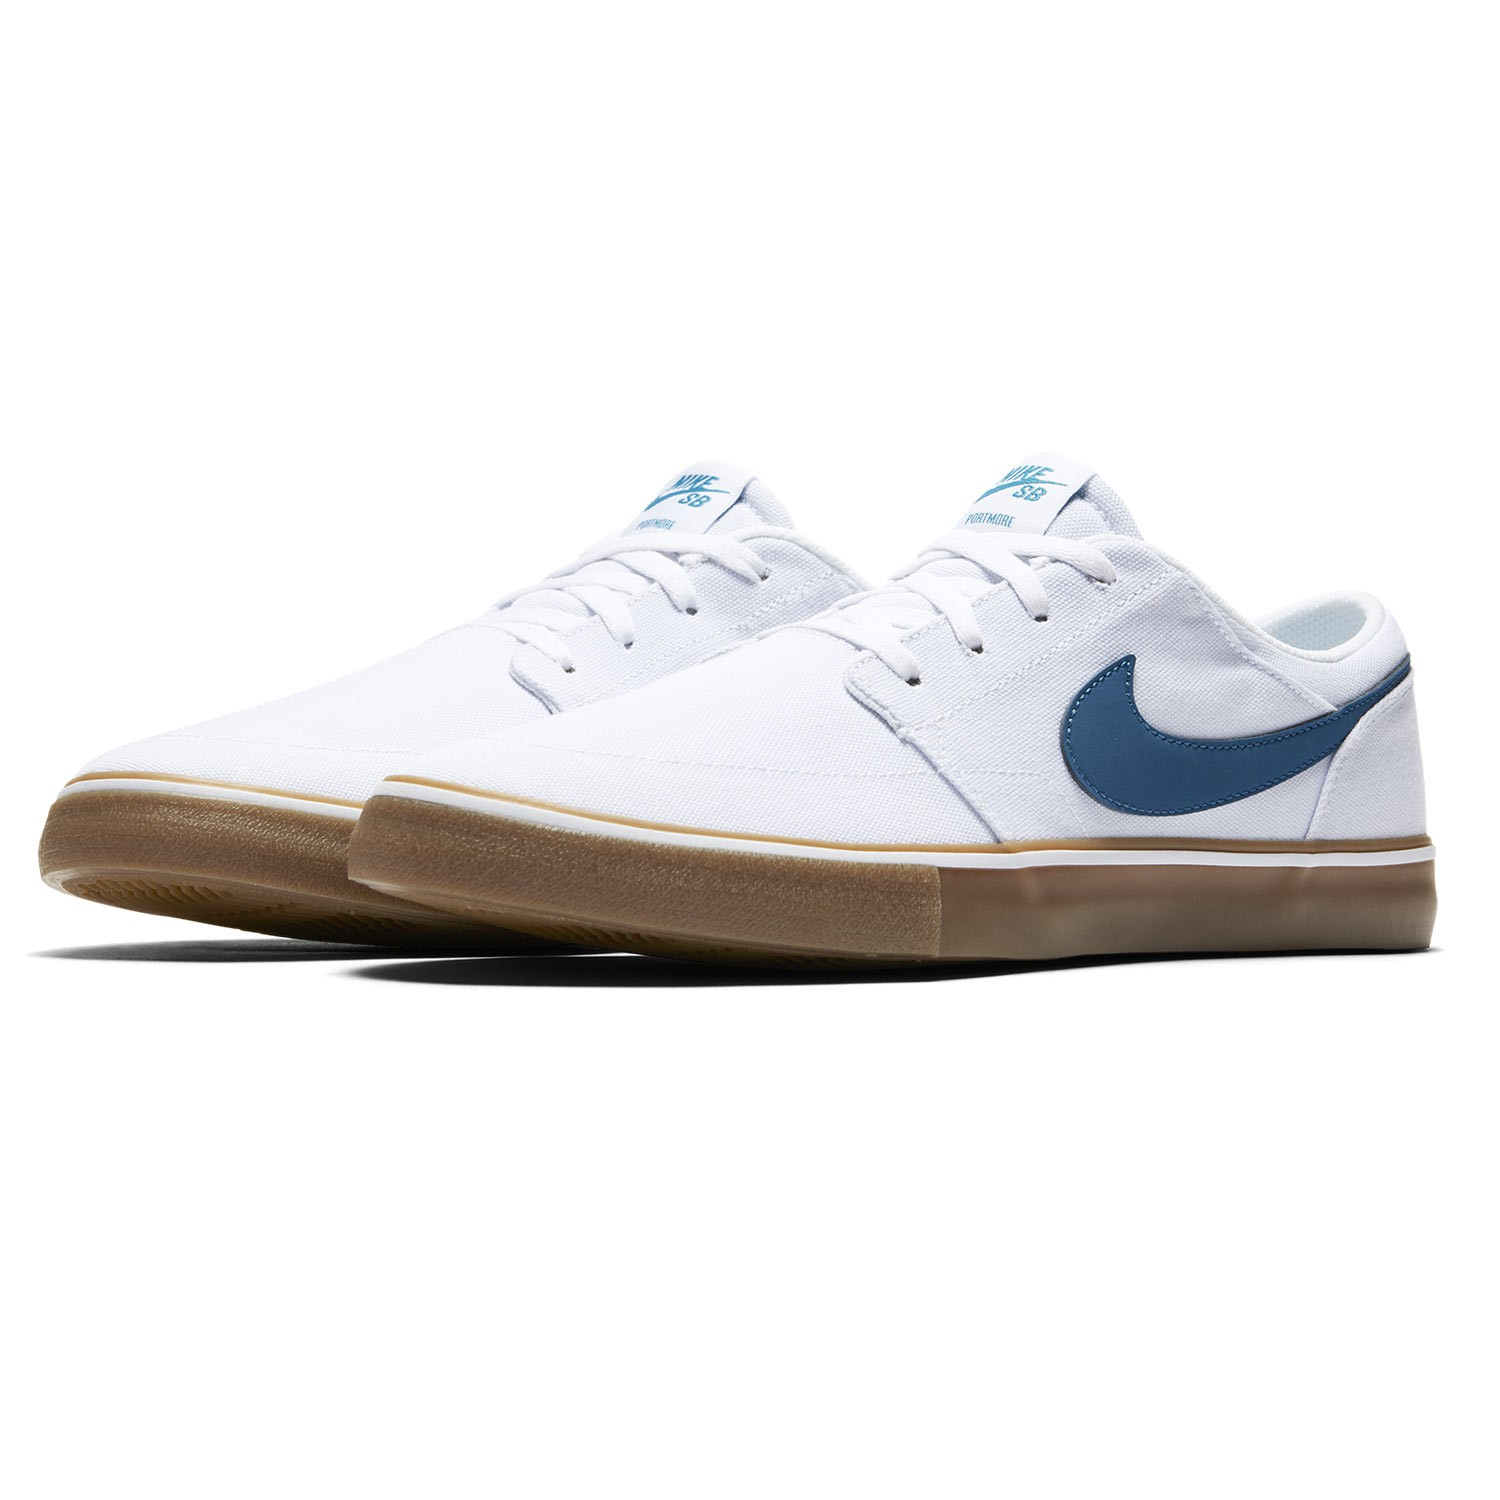 sneakers nike sb solarsoft portmore ii canvas white industrial blue brown snowboard zezula. Black Bedroom Furniture Sets. Home Design Ideas